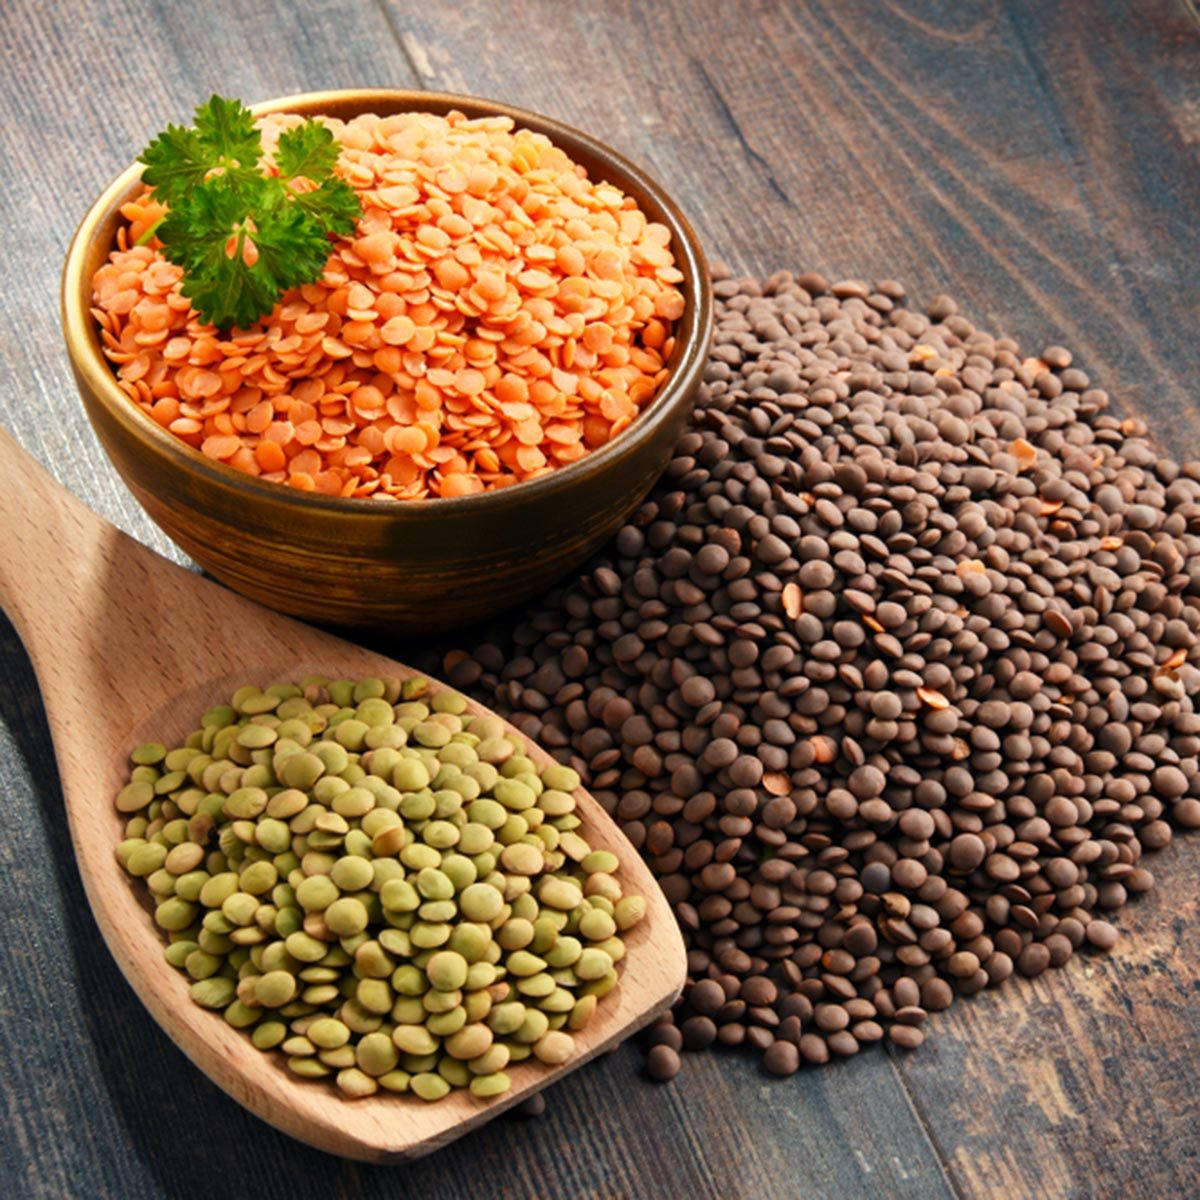 Composition with bowl of lentils on wooden table.; Shutterstock ID 1144805825; Job (TFH, TOH, RD, BNB, CWM, CM): TOH